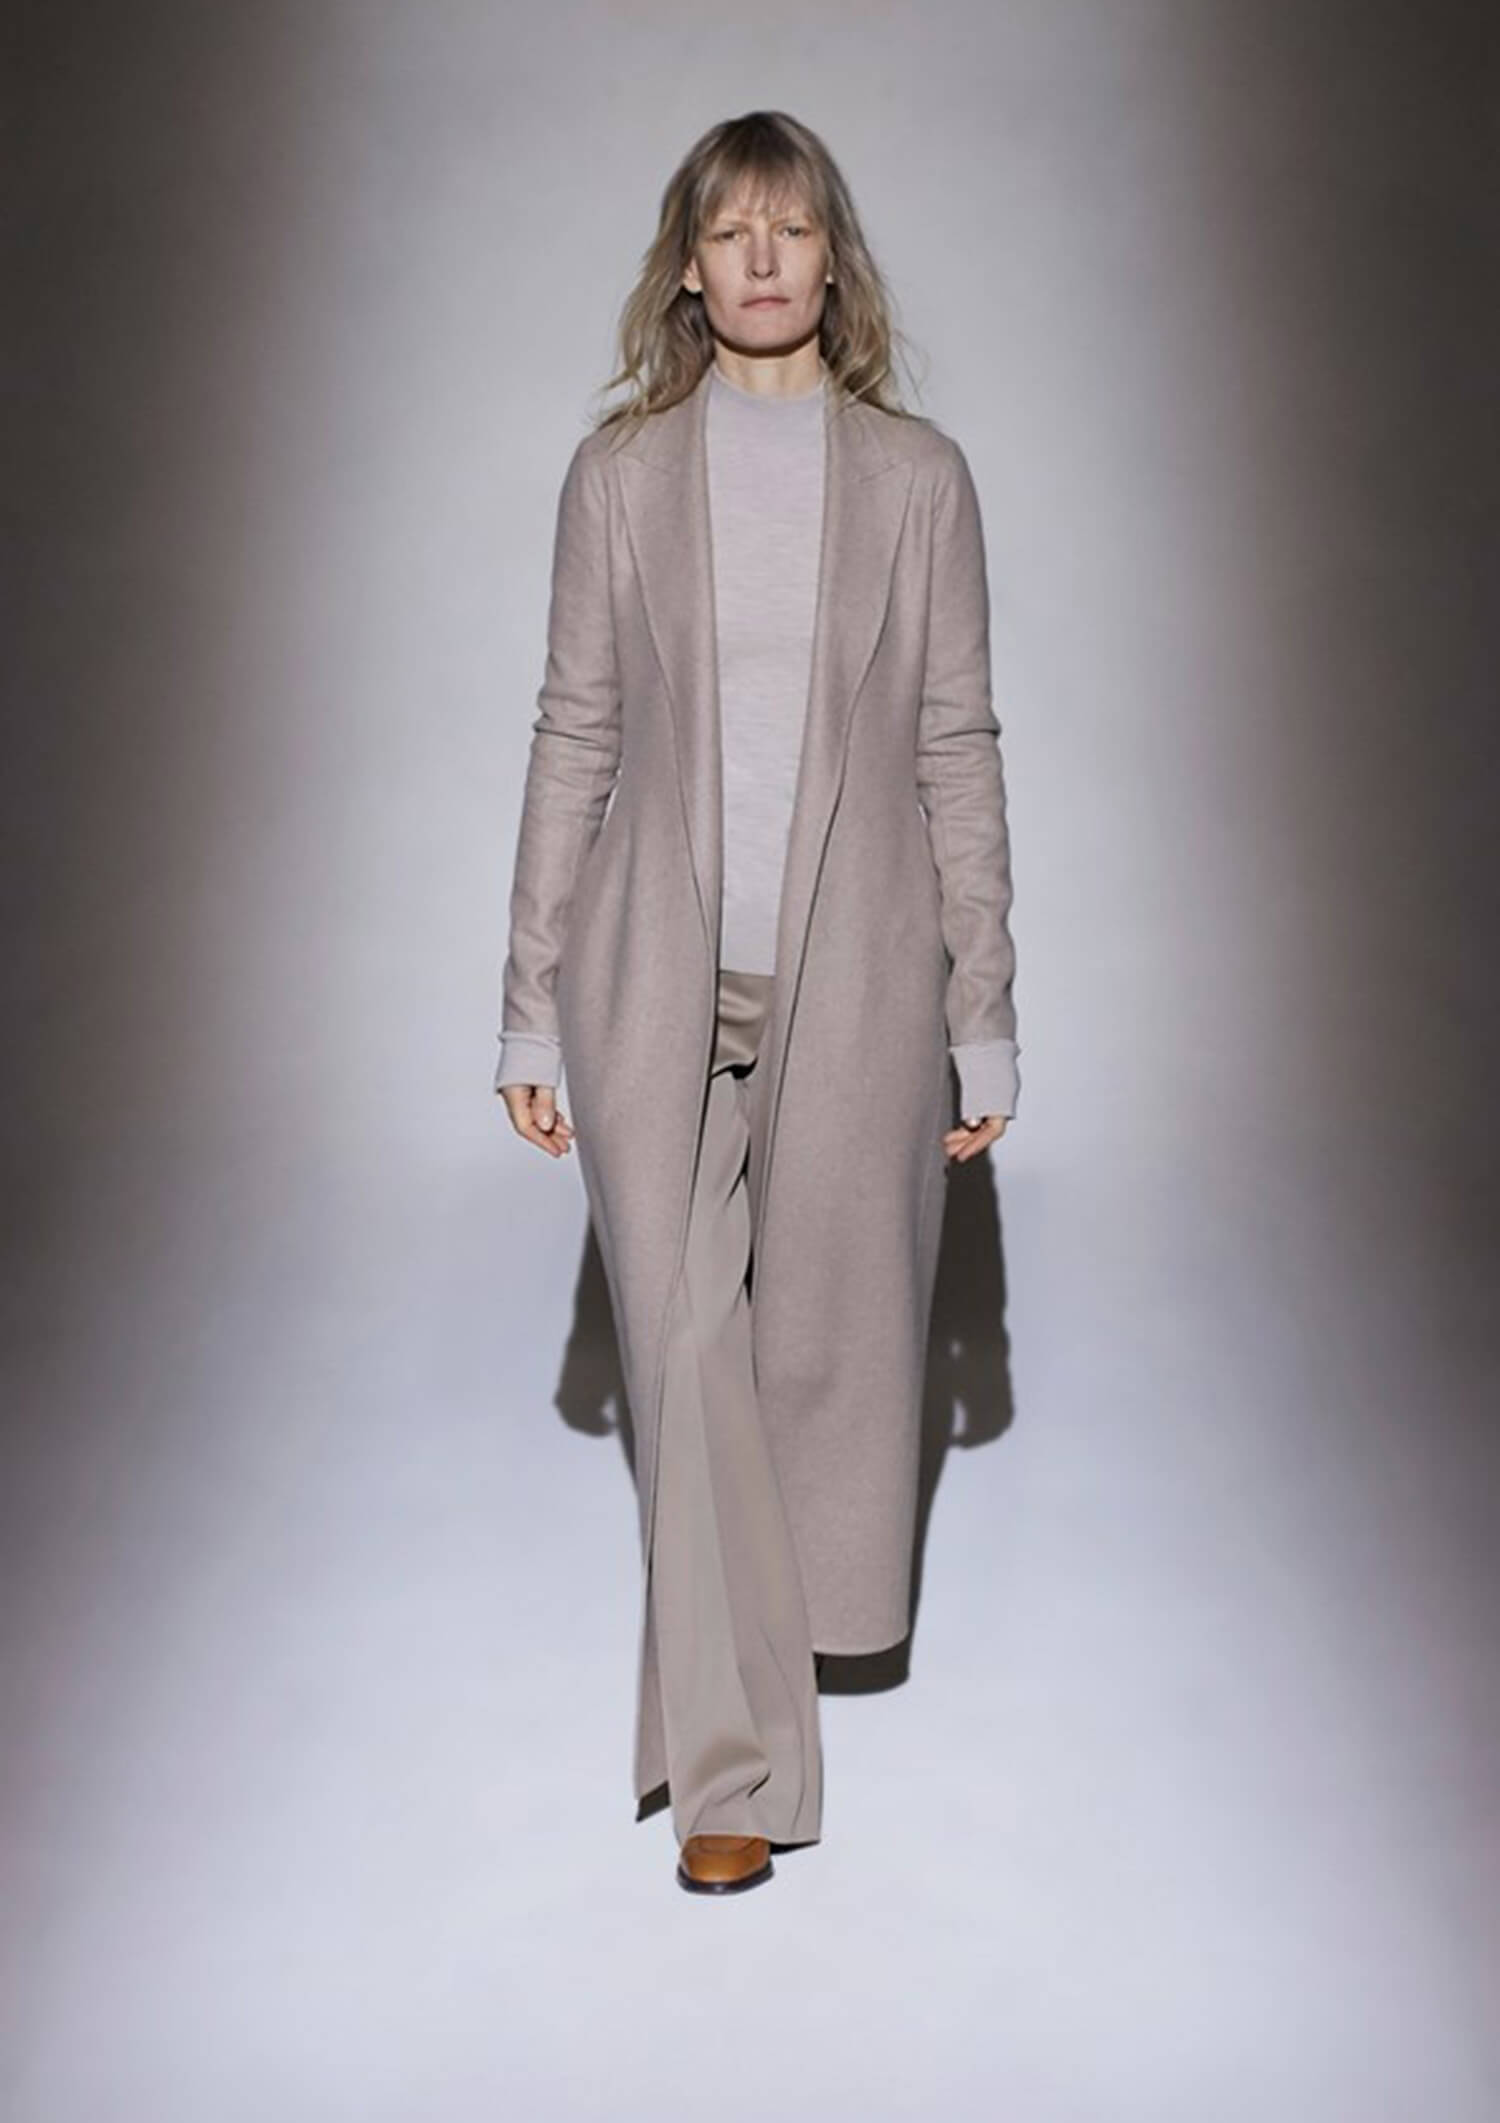 est-living-style-hunter-atelier-cph-the-row-ready-to-wear